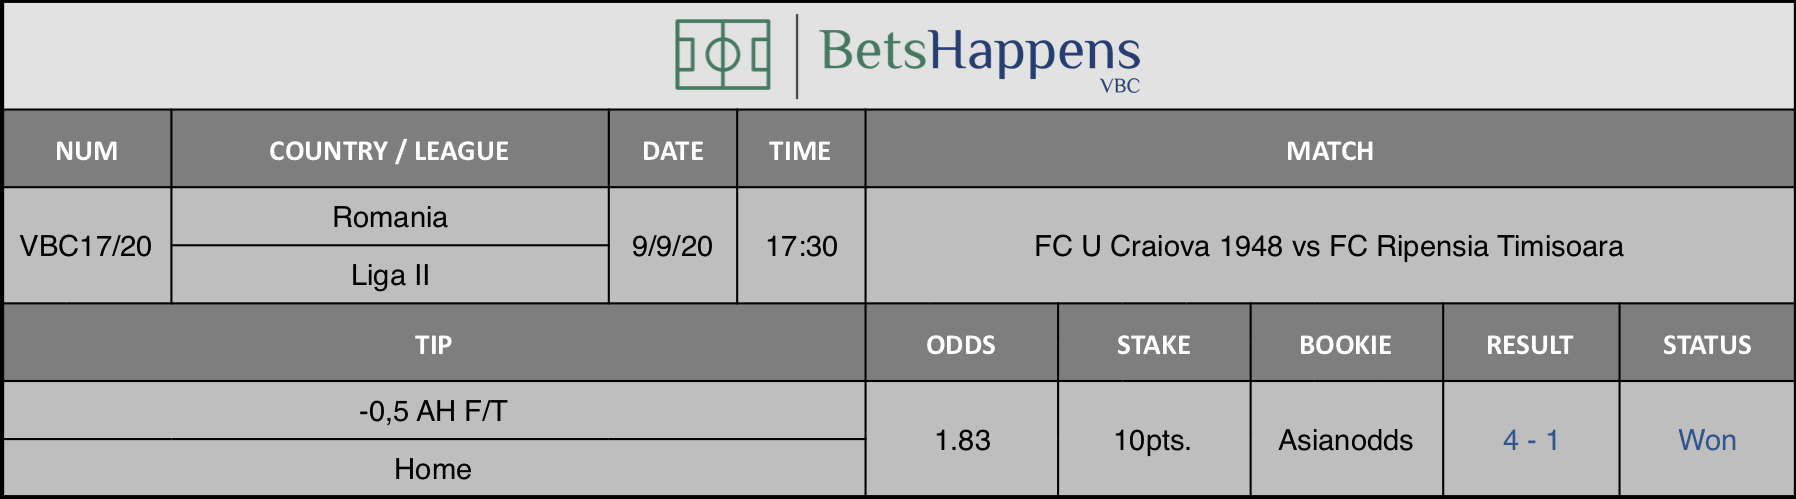 Results of our advice for the match FC U Craiova 1948 vs FC Ripensia Timisoara in which -0.5 AH F / T Home is recommended.